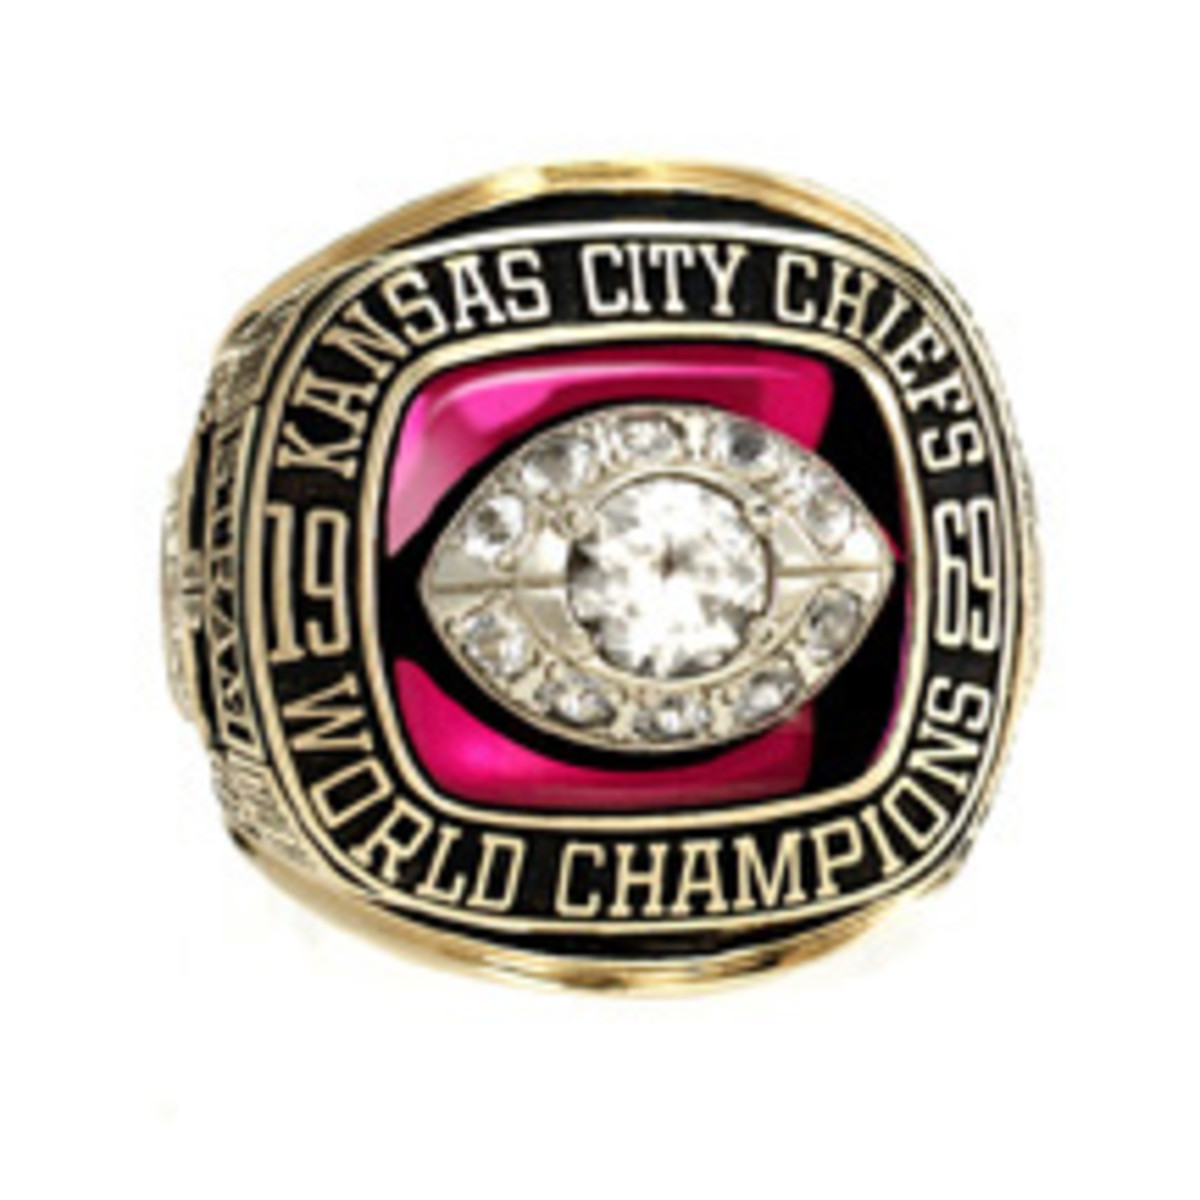 IV Kansas City Chief 1970